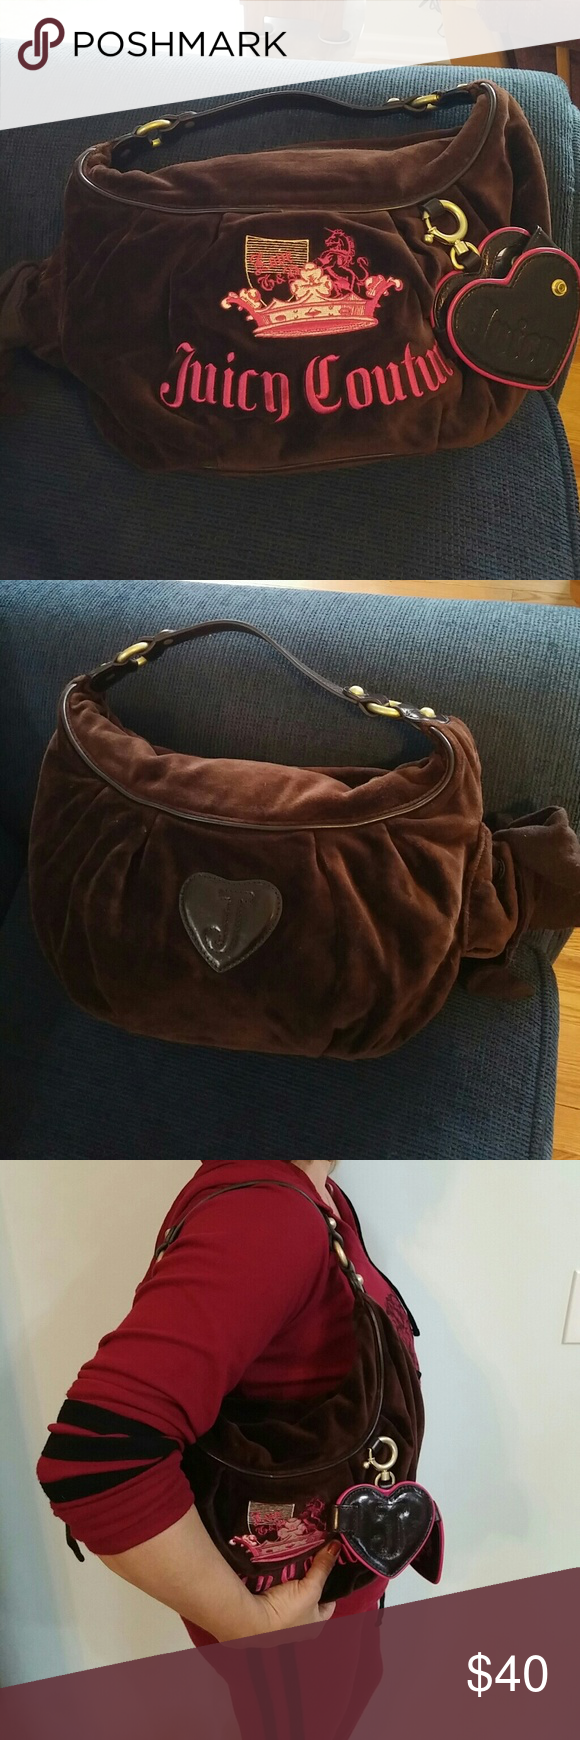 (JUICY COUTURE) brown scoop purse A sweet little heart mirror that says I am the fairest on it hands off the purse and opens and shuts with a snap. There is also a bow off to the side.  Beautiful lining inside the purse was only used a few times and downsizing all my purses so a lot of them do not so much where it all.  Even though the handle is short you can still put it on your shoulder Juicy Couture is beautifully embroidered into the purse along with the applique above it. Juicy Couture…